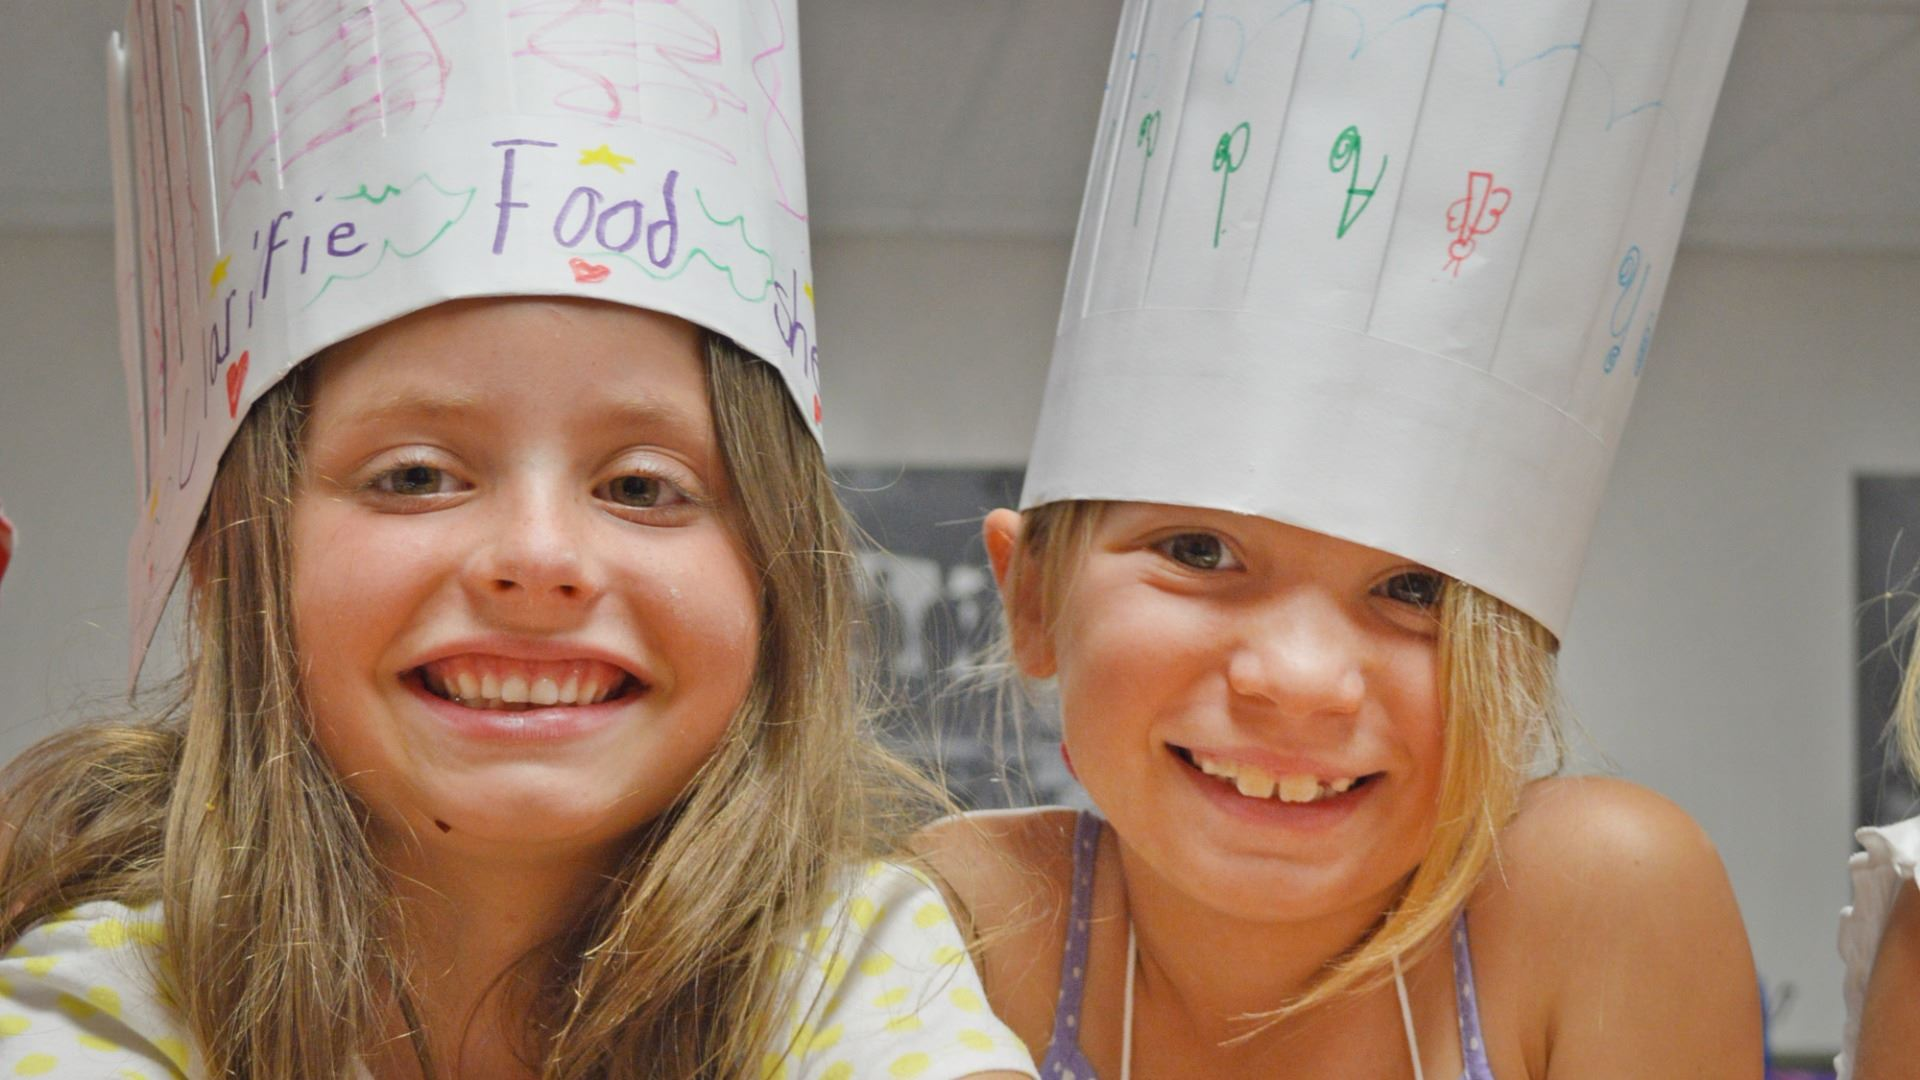 Two young girls wearing paper chef's hats and playing with flour